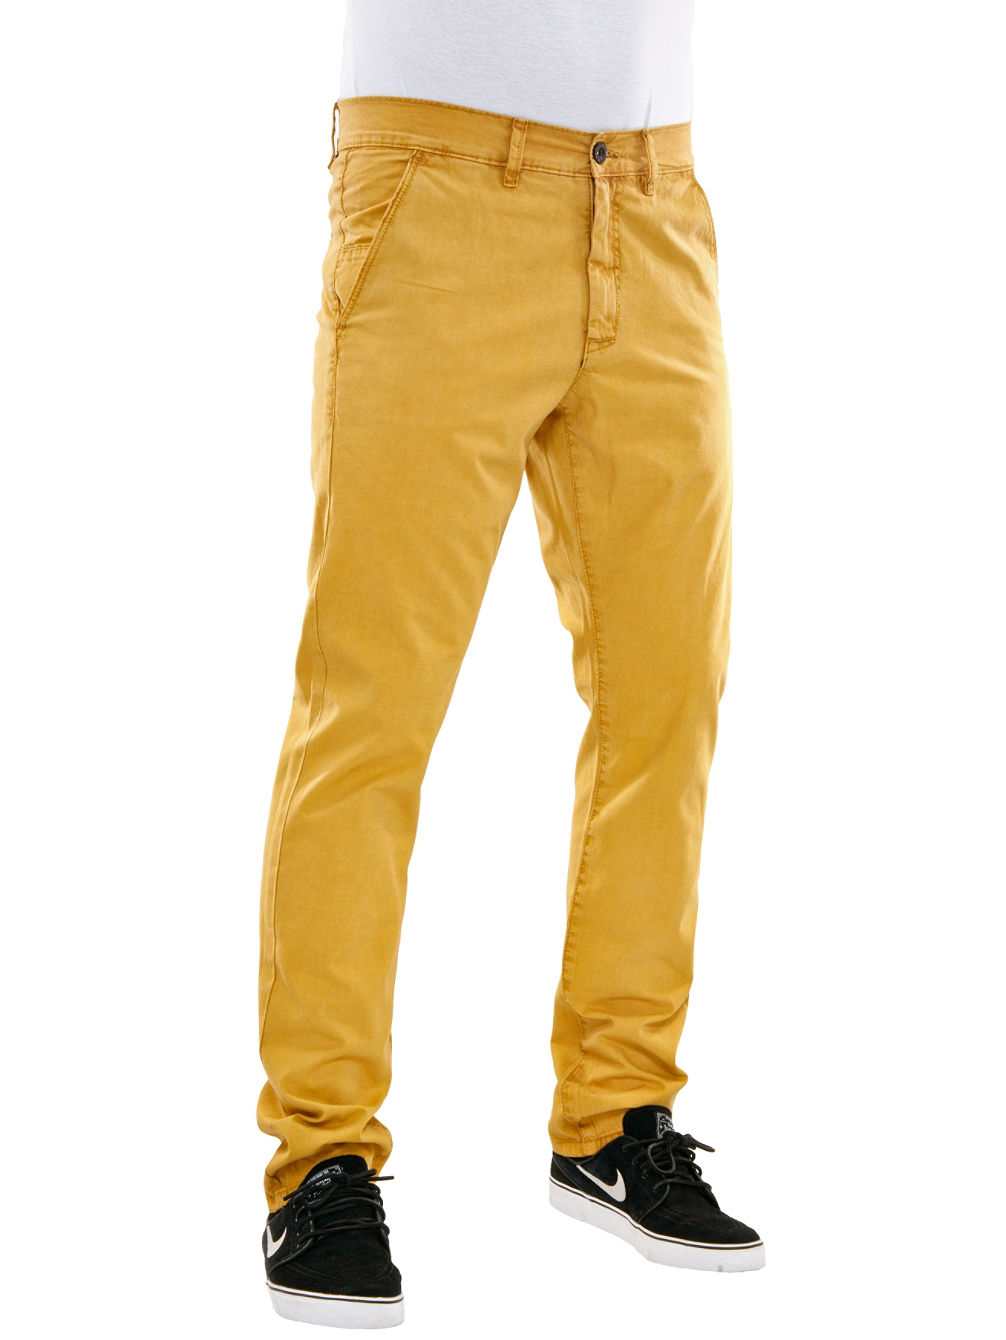 Grip Tapered Chino Pants